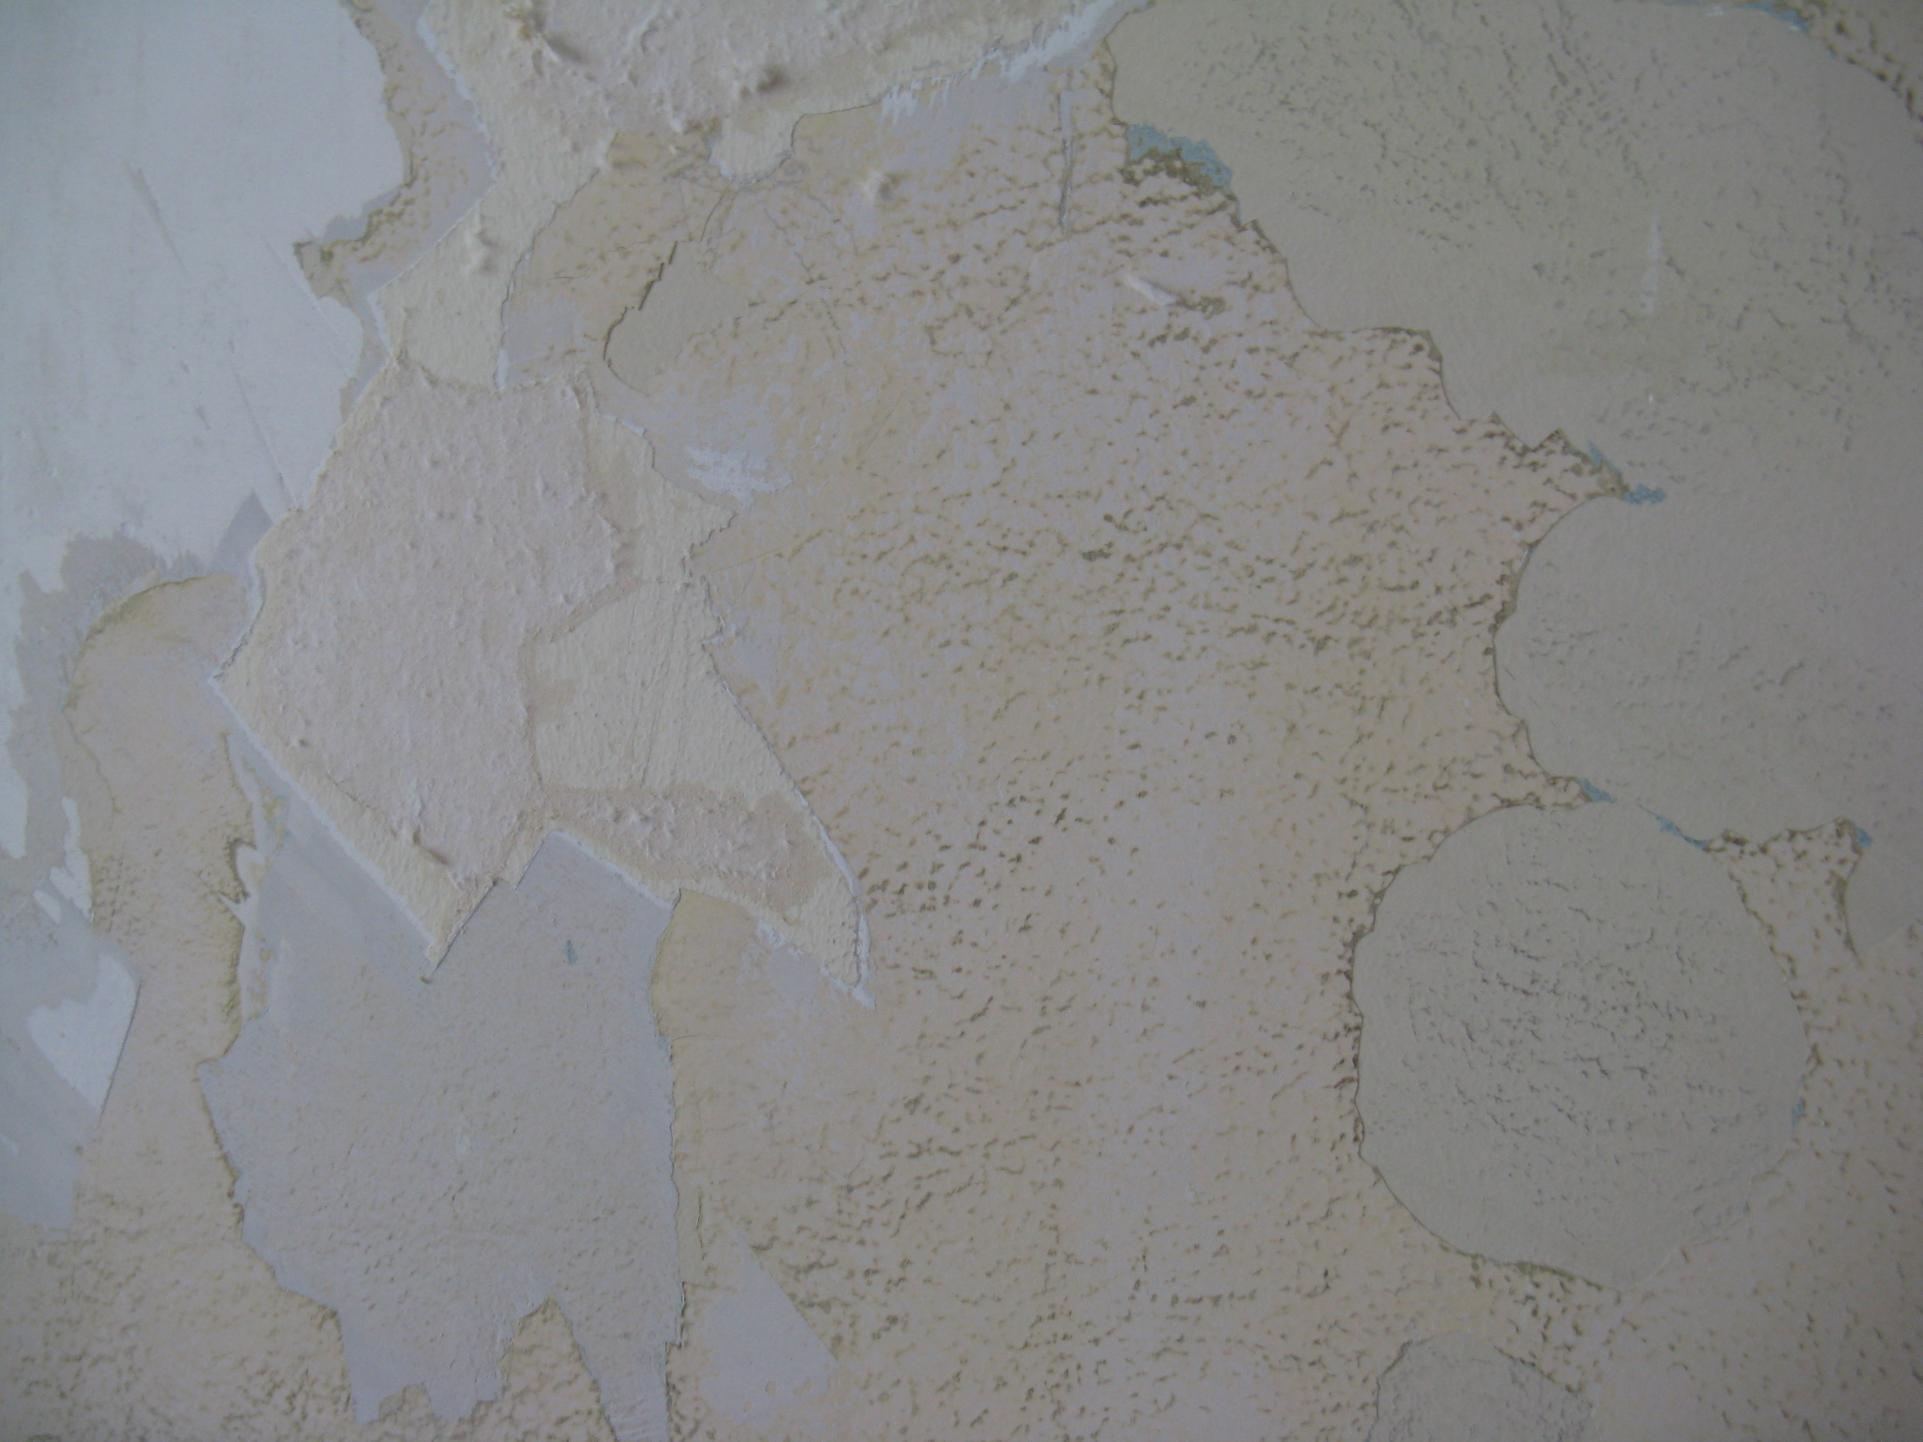 paint flaking from the ceiling...cause/solution??-90-lochmoor-dec-26-2008-intil-jan-2-2009-132.jpg